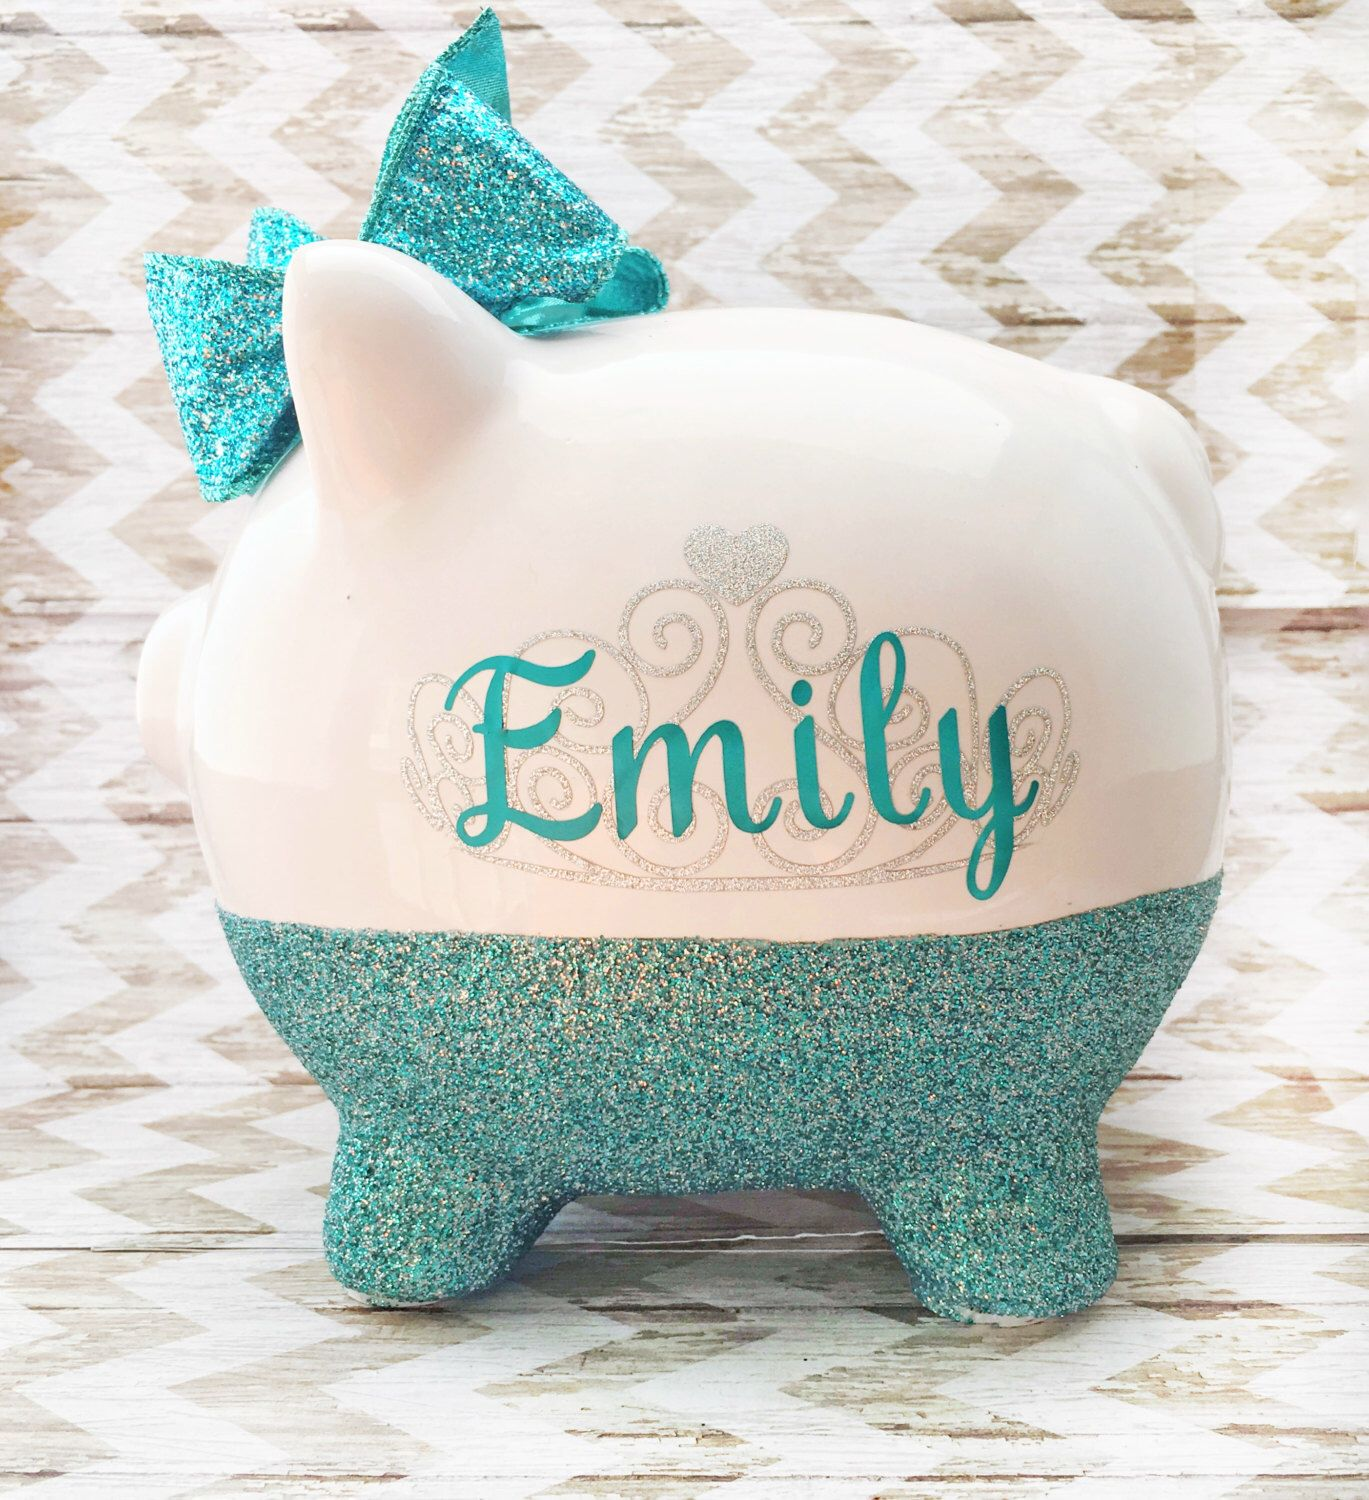 Silver Piggy Bank For Baby Pin By Glitzy Miss Designs On Glitzy Miss Designs